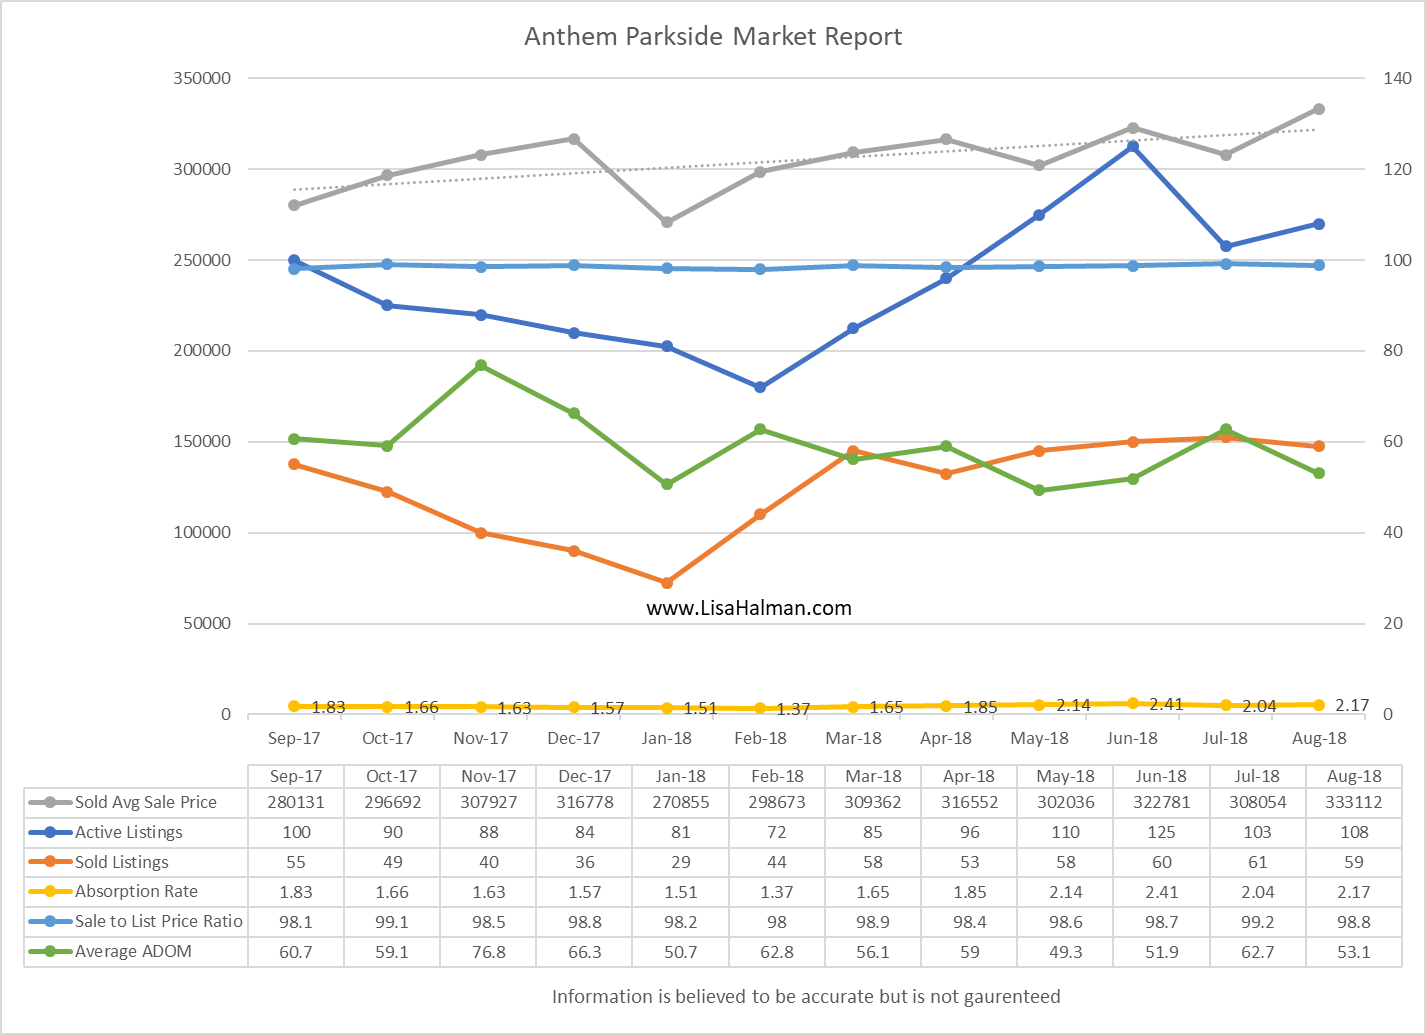 Anthem Parkside Market Update August 2018